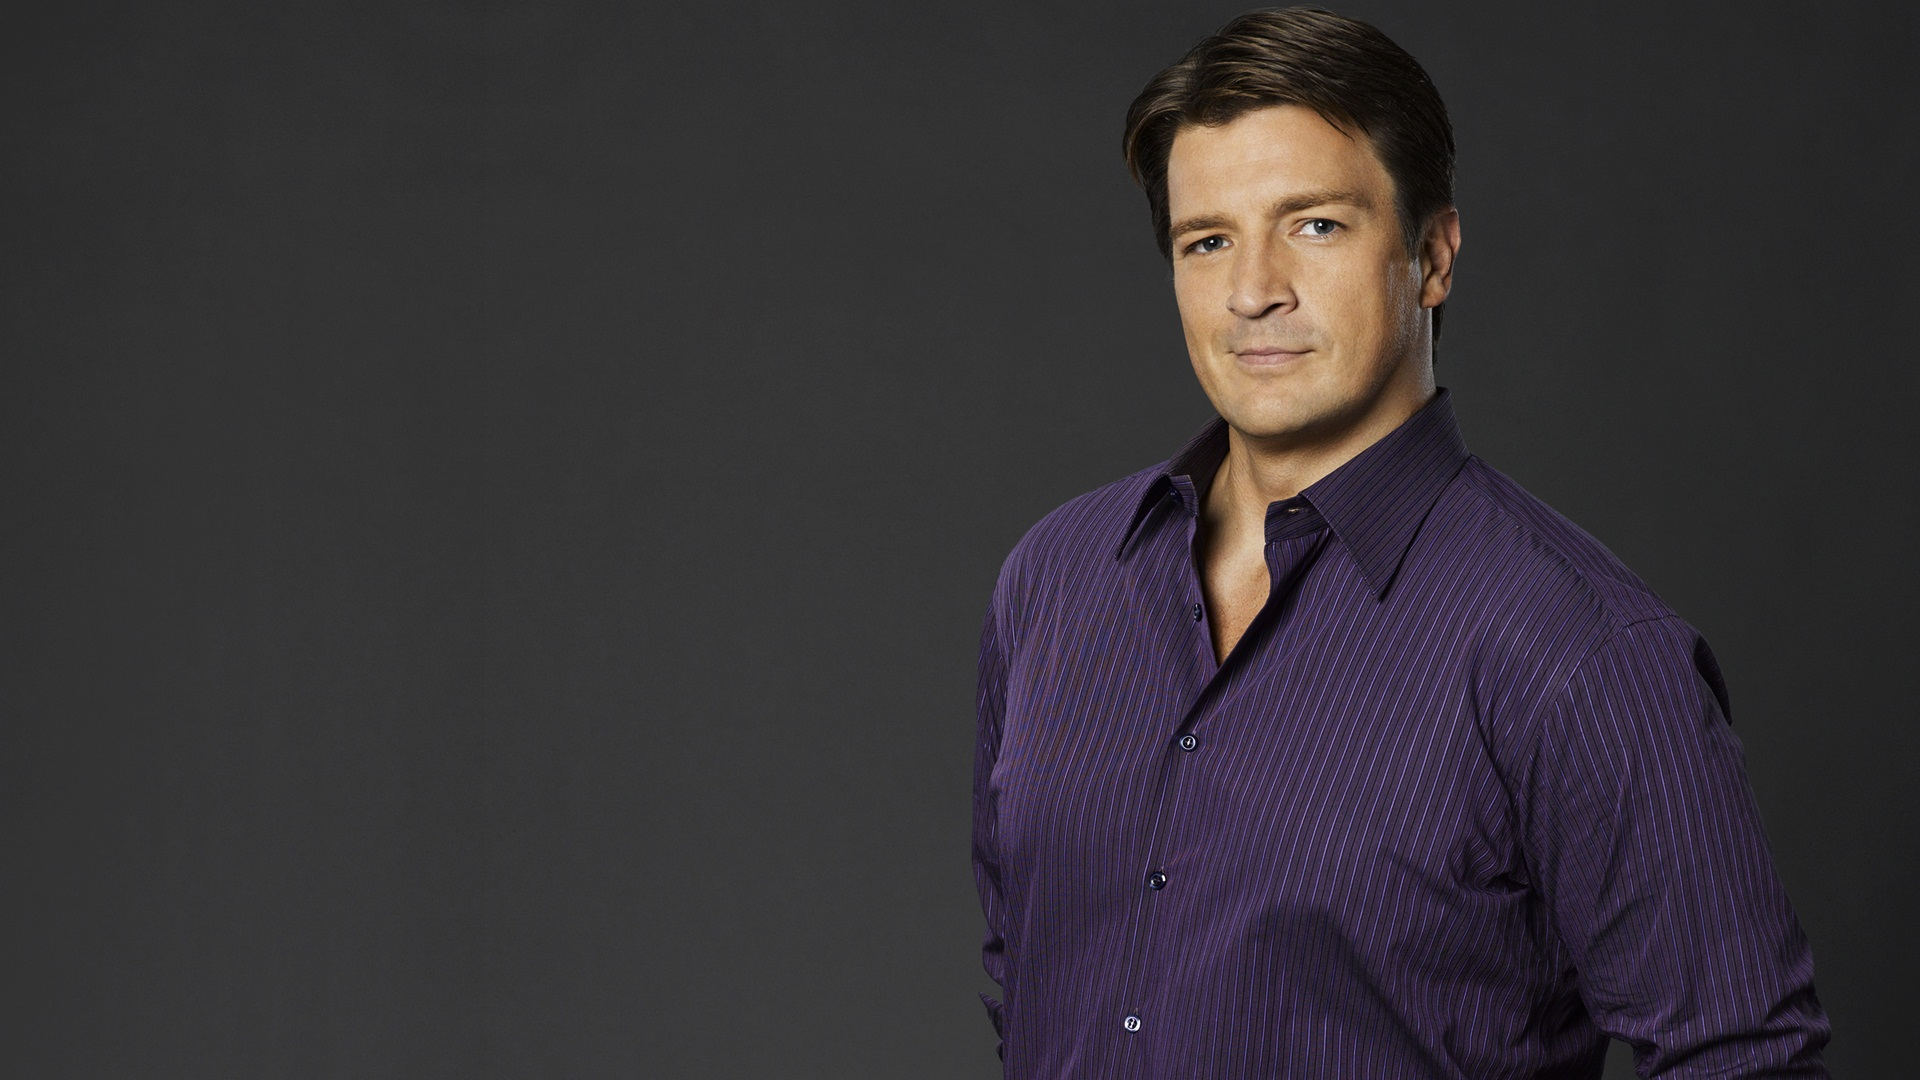 Nathan Fillion Actor Castle Nathan Fillion was born on 27 March 1971 in Edmonton Alberta Canada He is the son of Cookie Early and Bob Fillion both